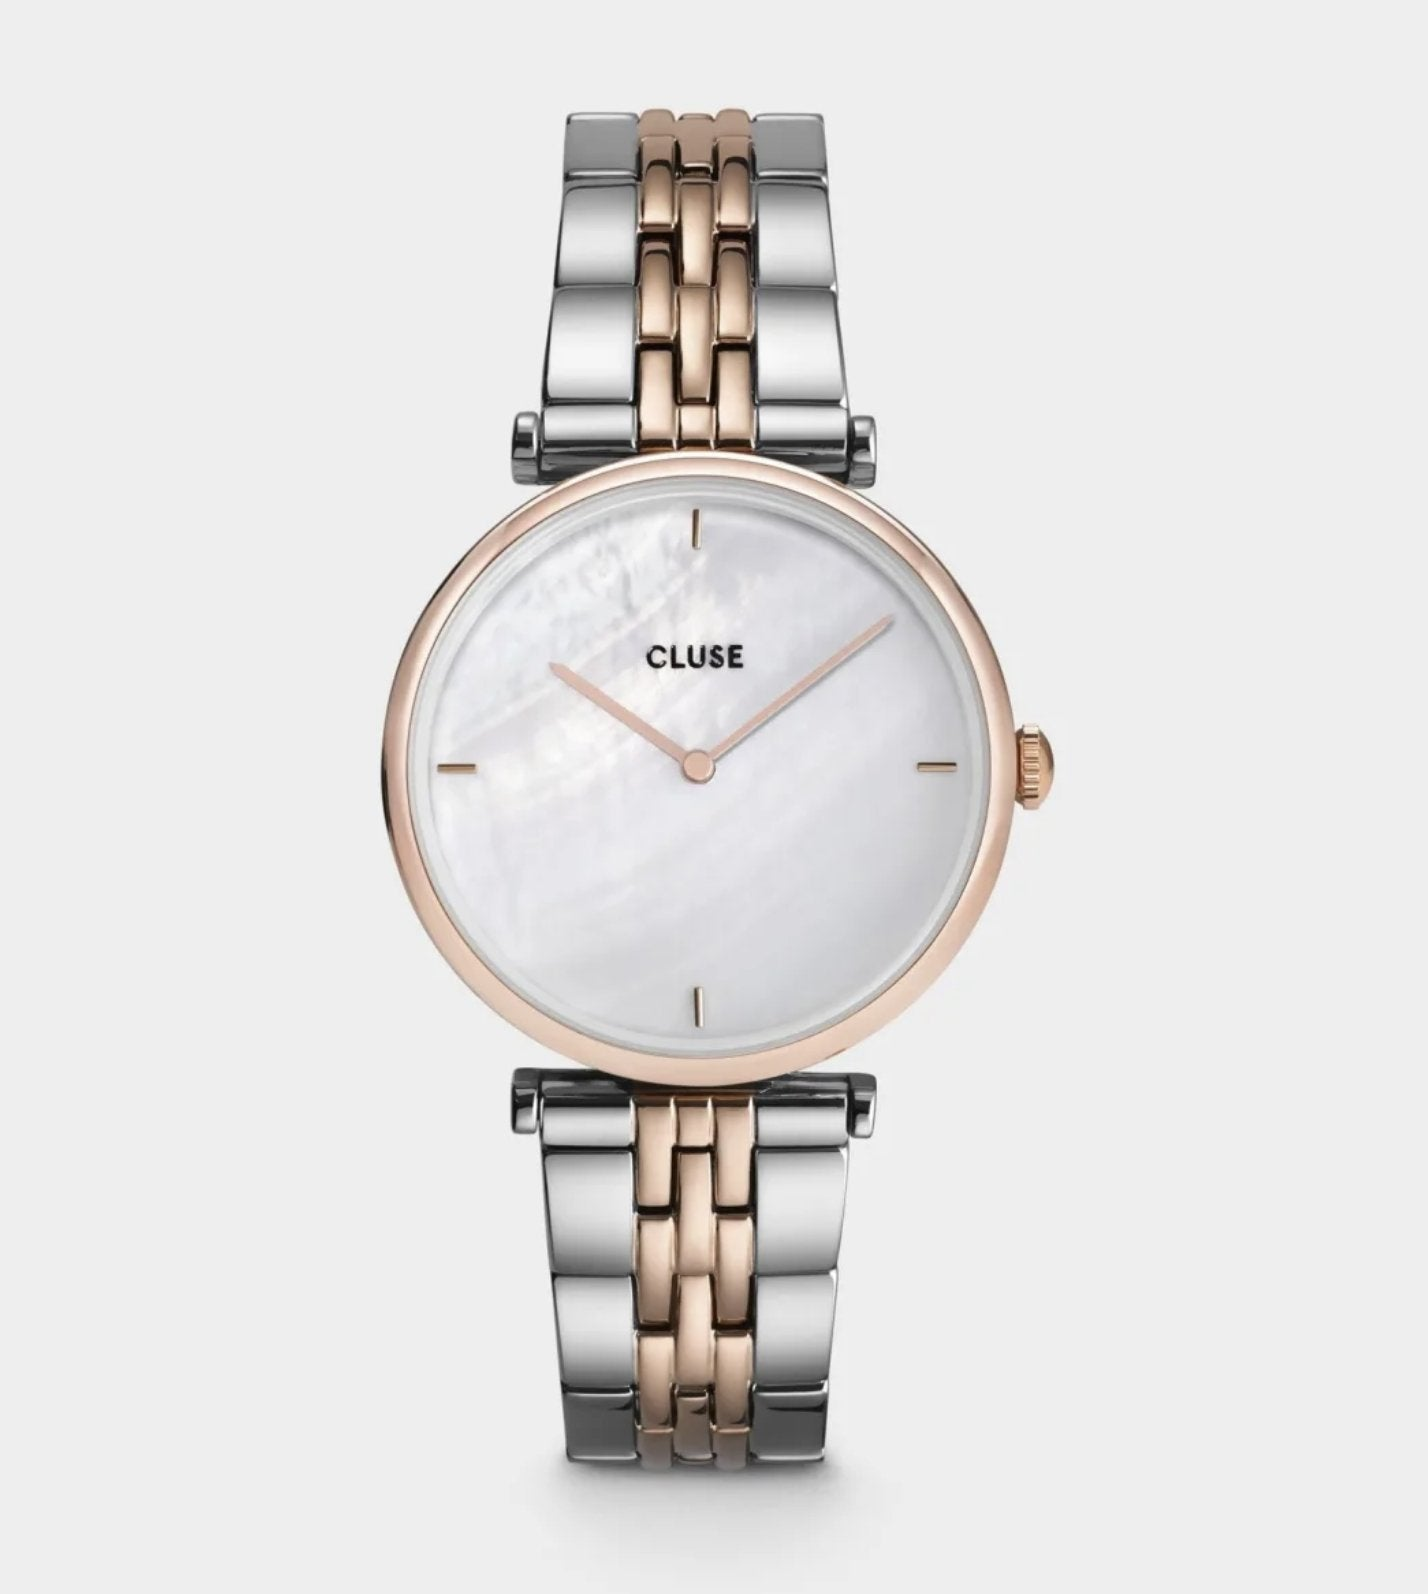 Cluse - Triomphe Steel White Pearl Rose Gold - The Walk in Wardrobe